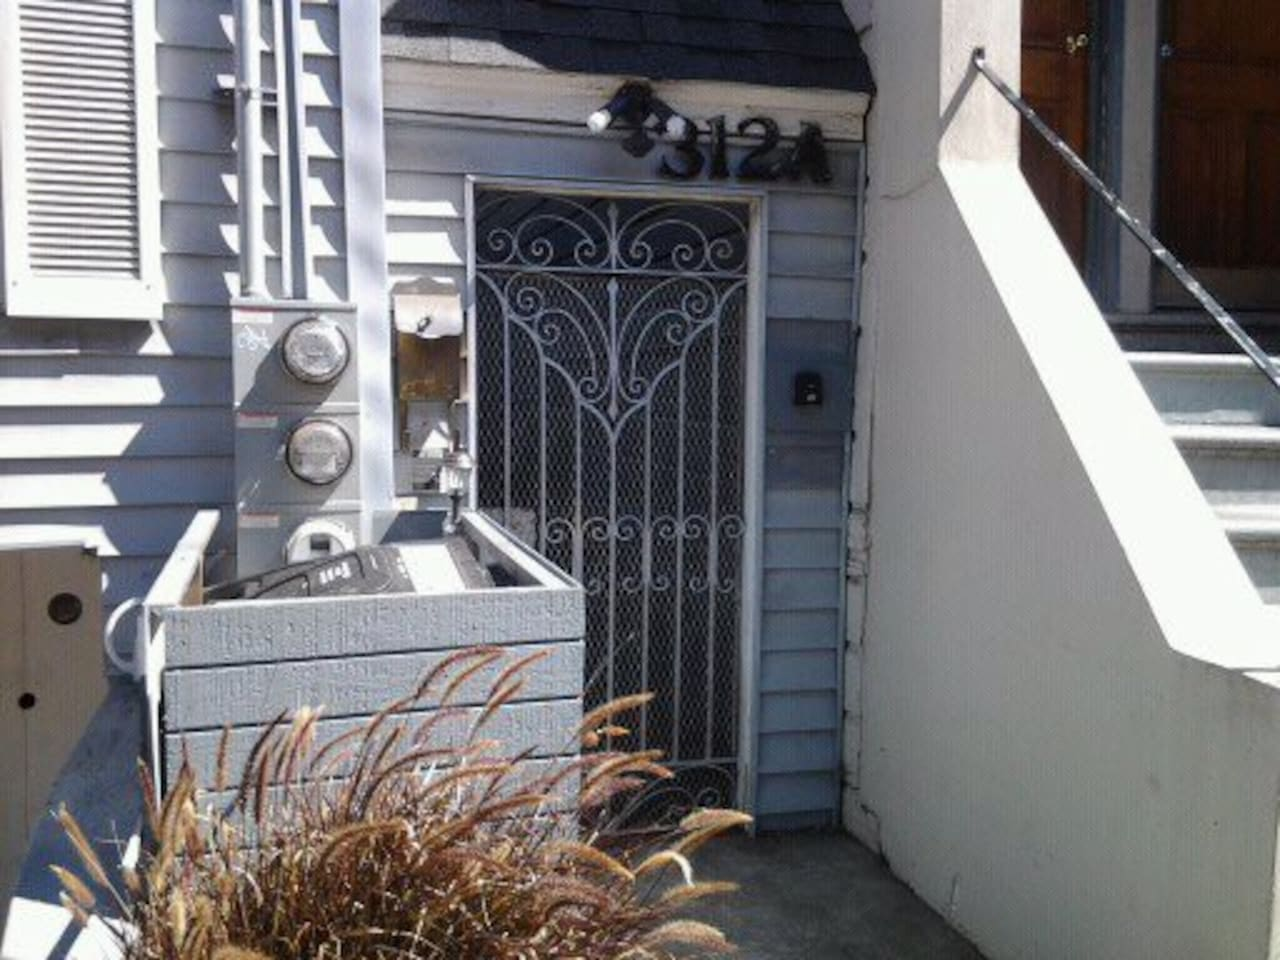 THIS IS THE GATE TO THE APARTMENT THE LOCK BOX IN ON THE RIGHT. LIGHT SWITCH ON THE LEFT PLEASE PRINT THIS PHOTO